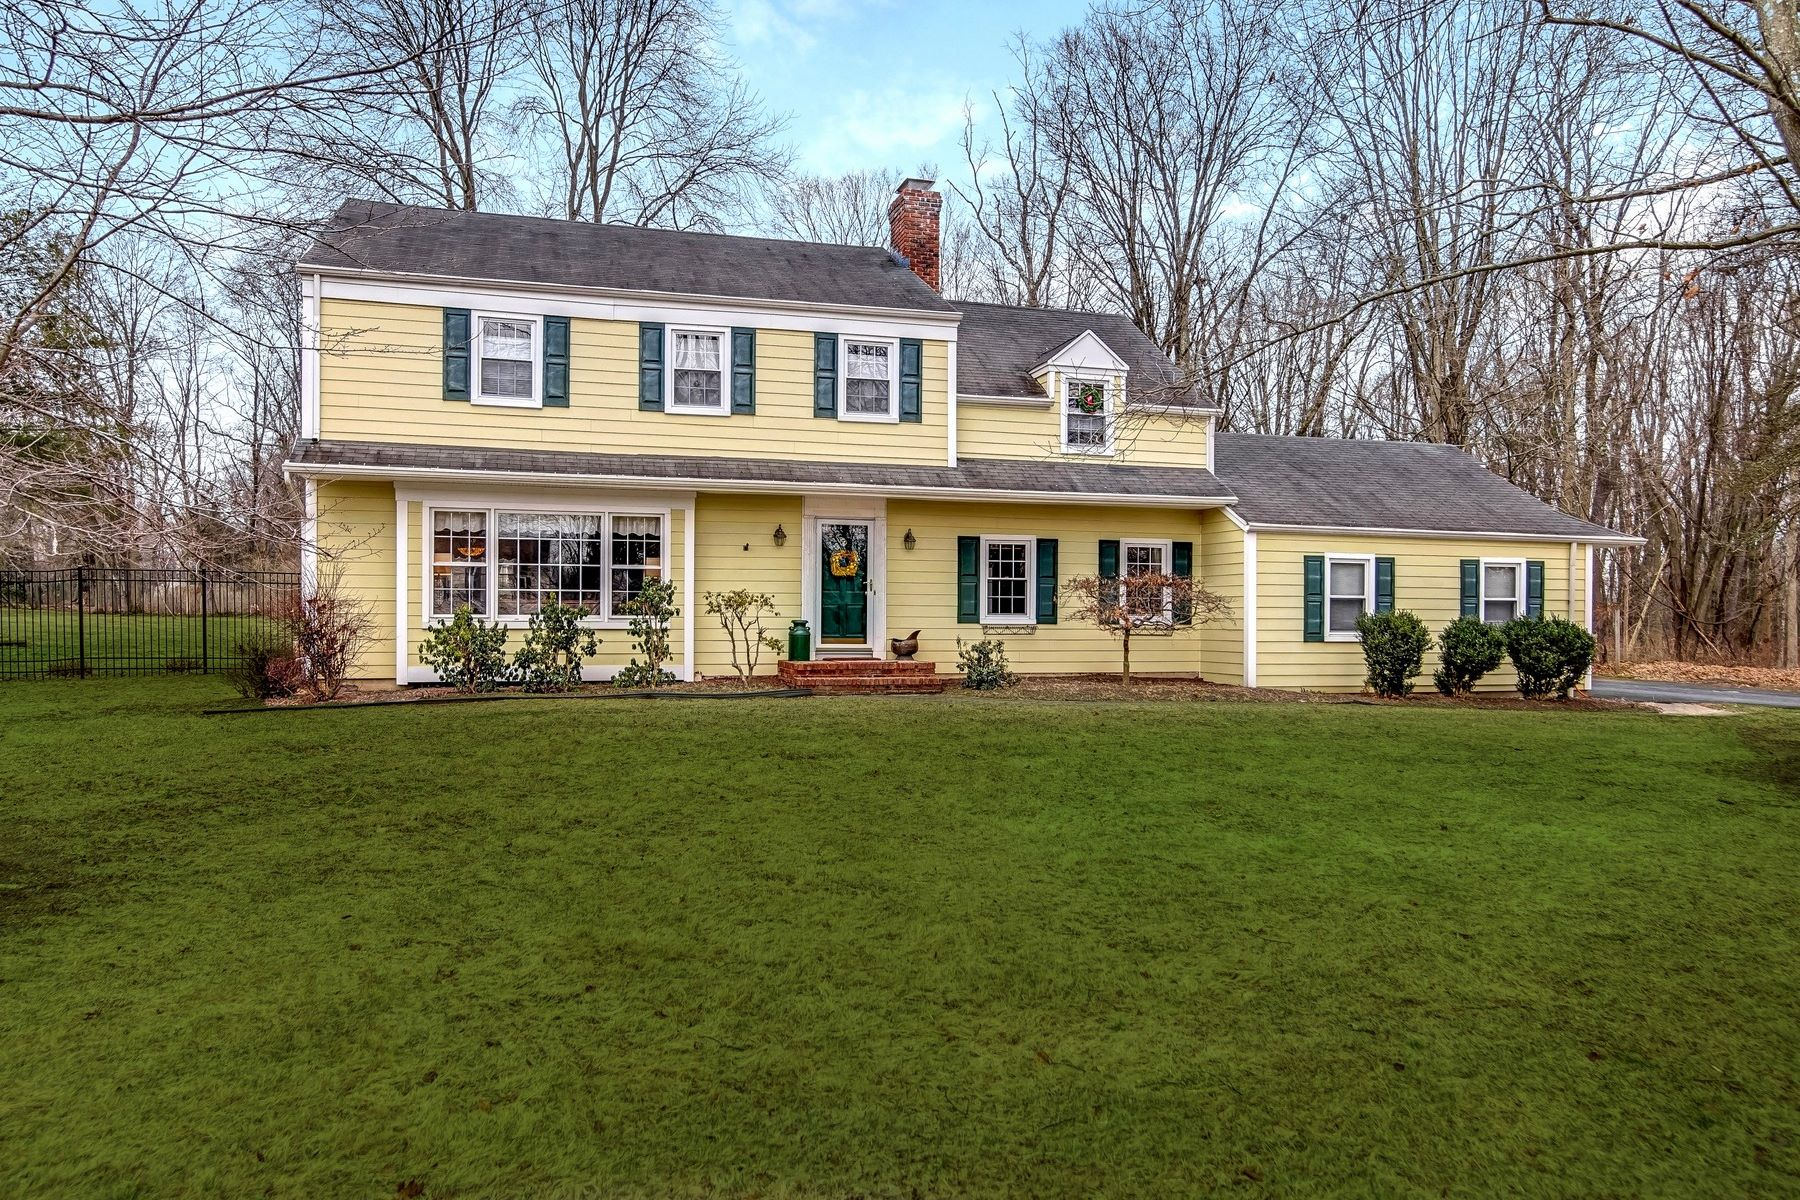 Single Family Home for Sale at Center Hall Colonial 1270 Mount Airy Road Basking Ridge, New Jersey 07920 United States